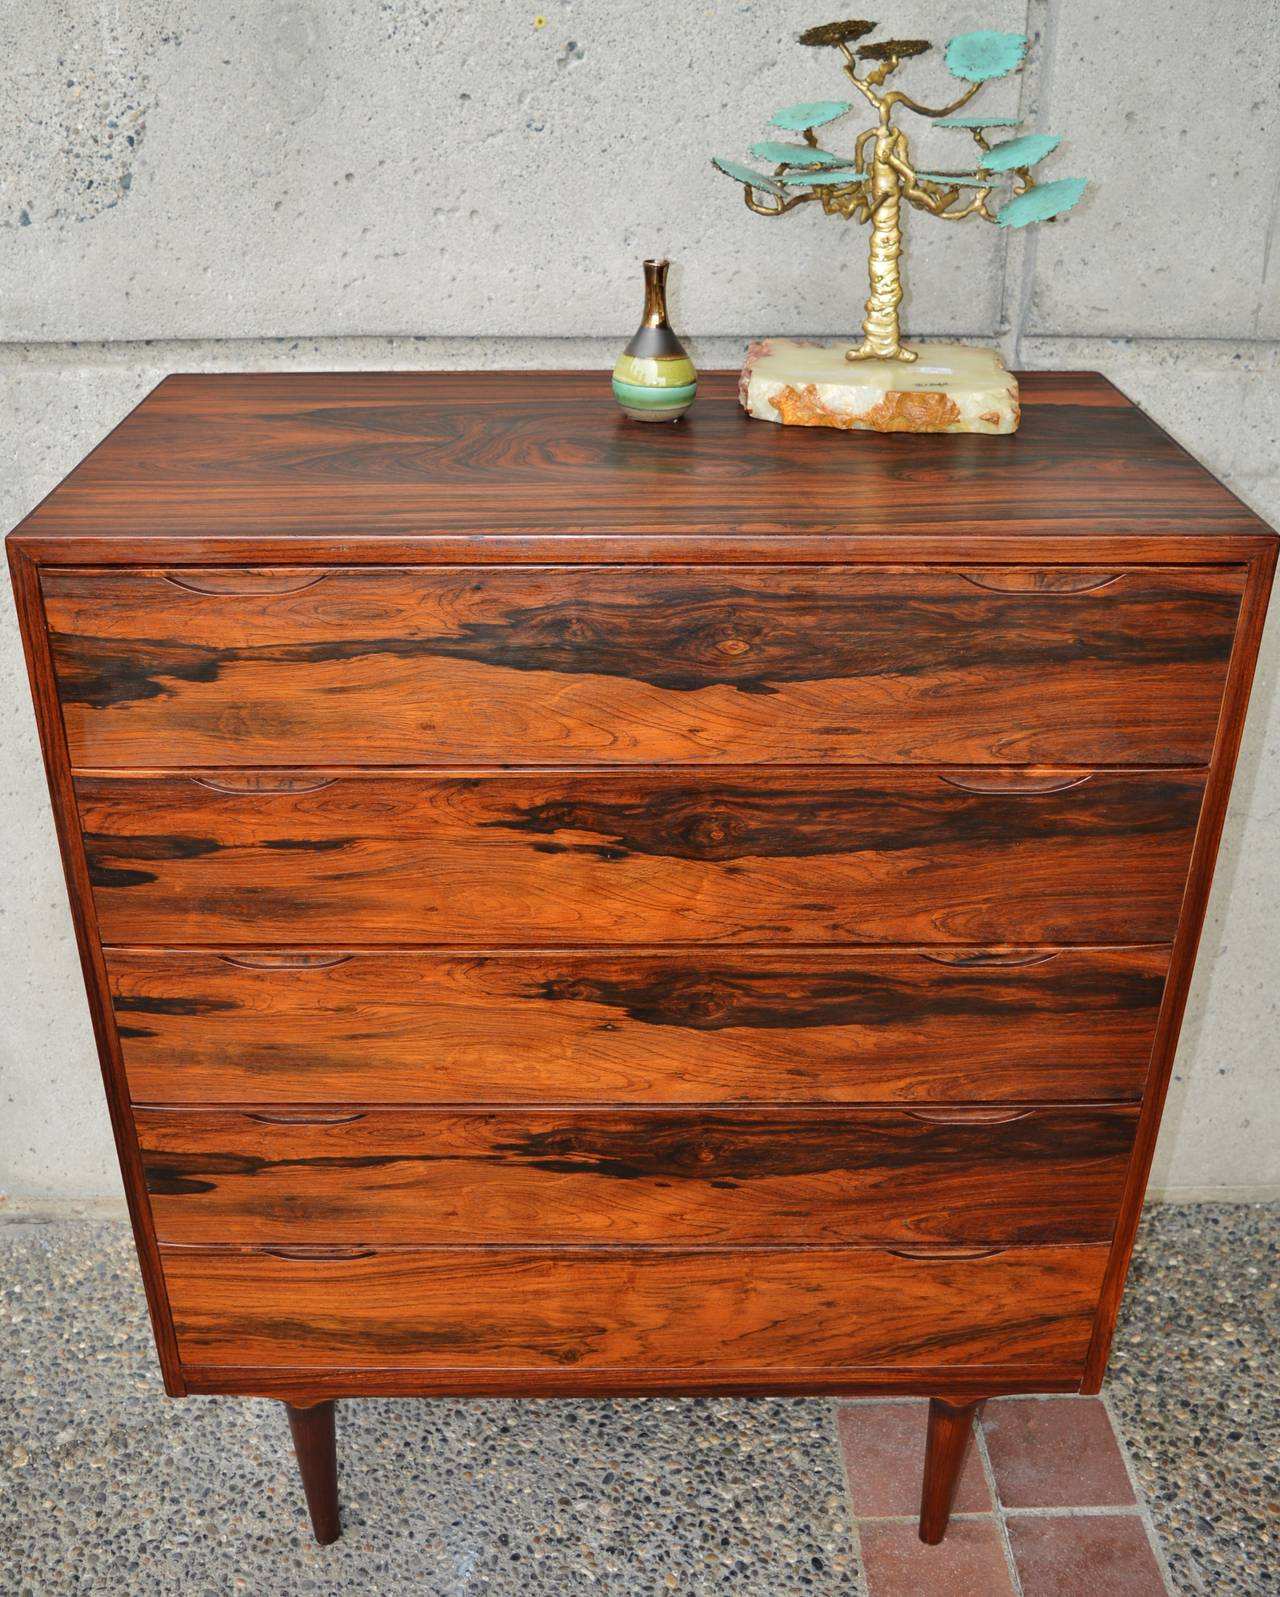 Pair of vintage danish rosewood and brushed steel side cabinets ref - Danish Modern Rosewood Highboy Dresser Or Chest Of Drawers 2